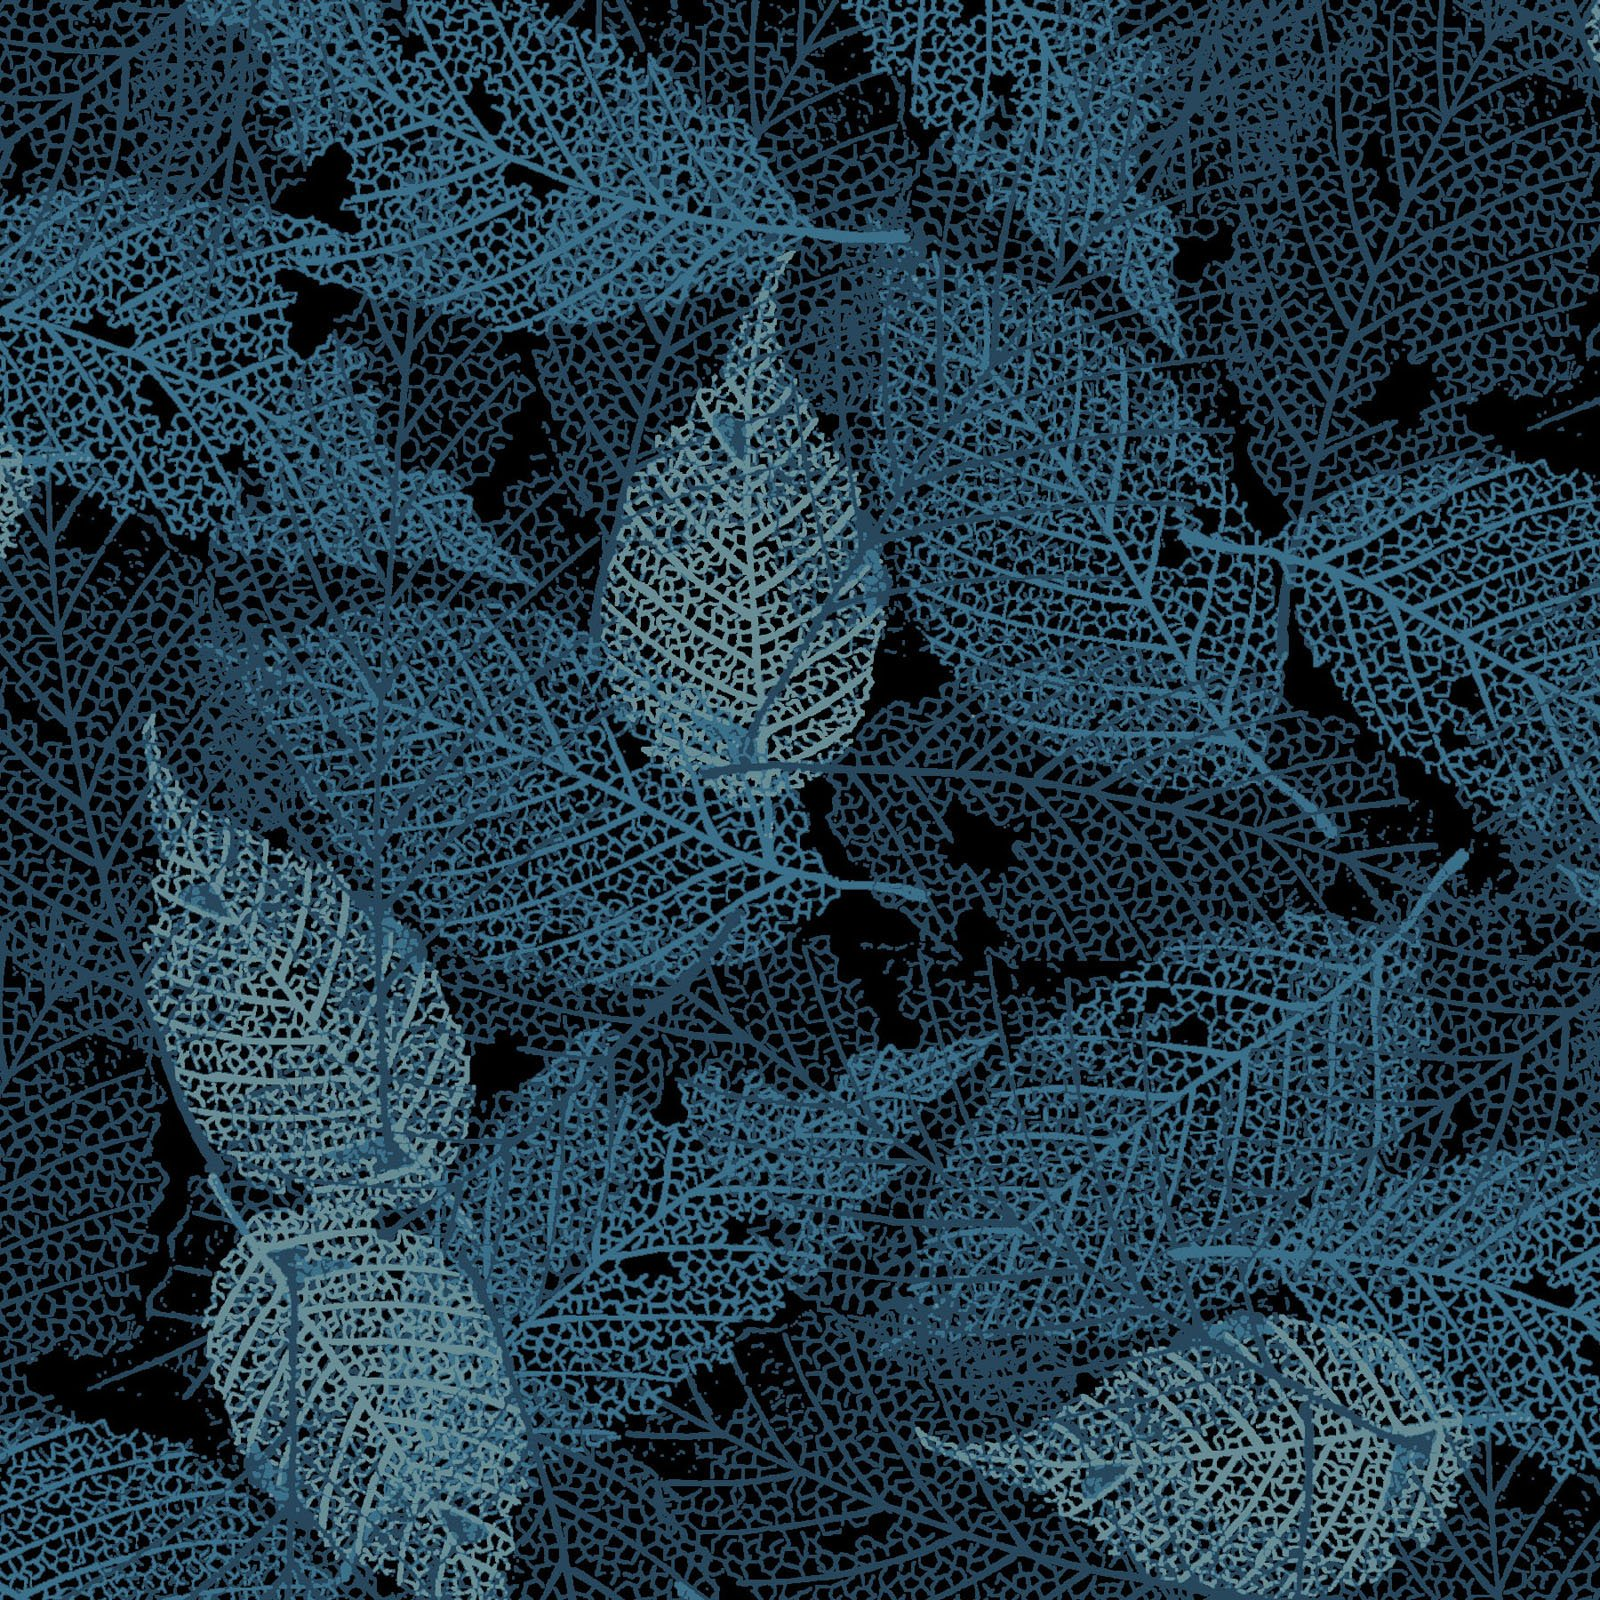 FOLI-4478 DT - FOLIAGE BY P&B BOUTIQUE TEXTURE LEAVES DK TEAL - ARRIVING IN MAY 2021